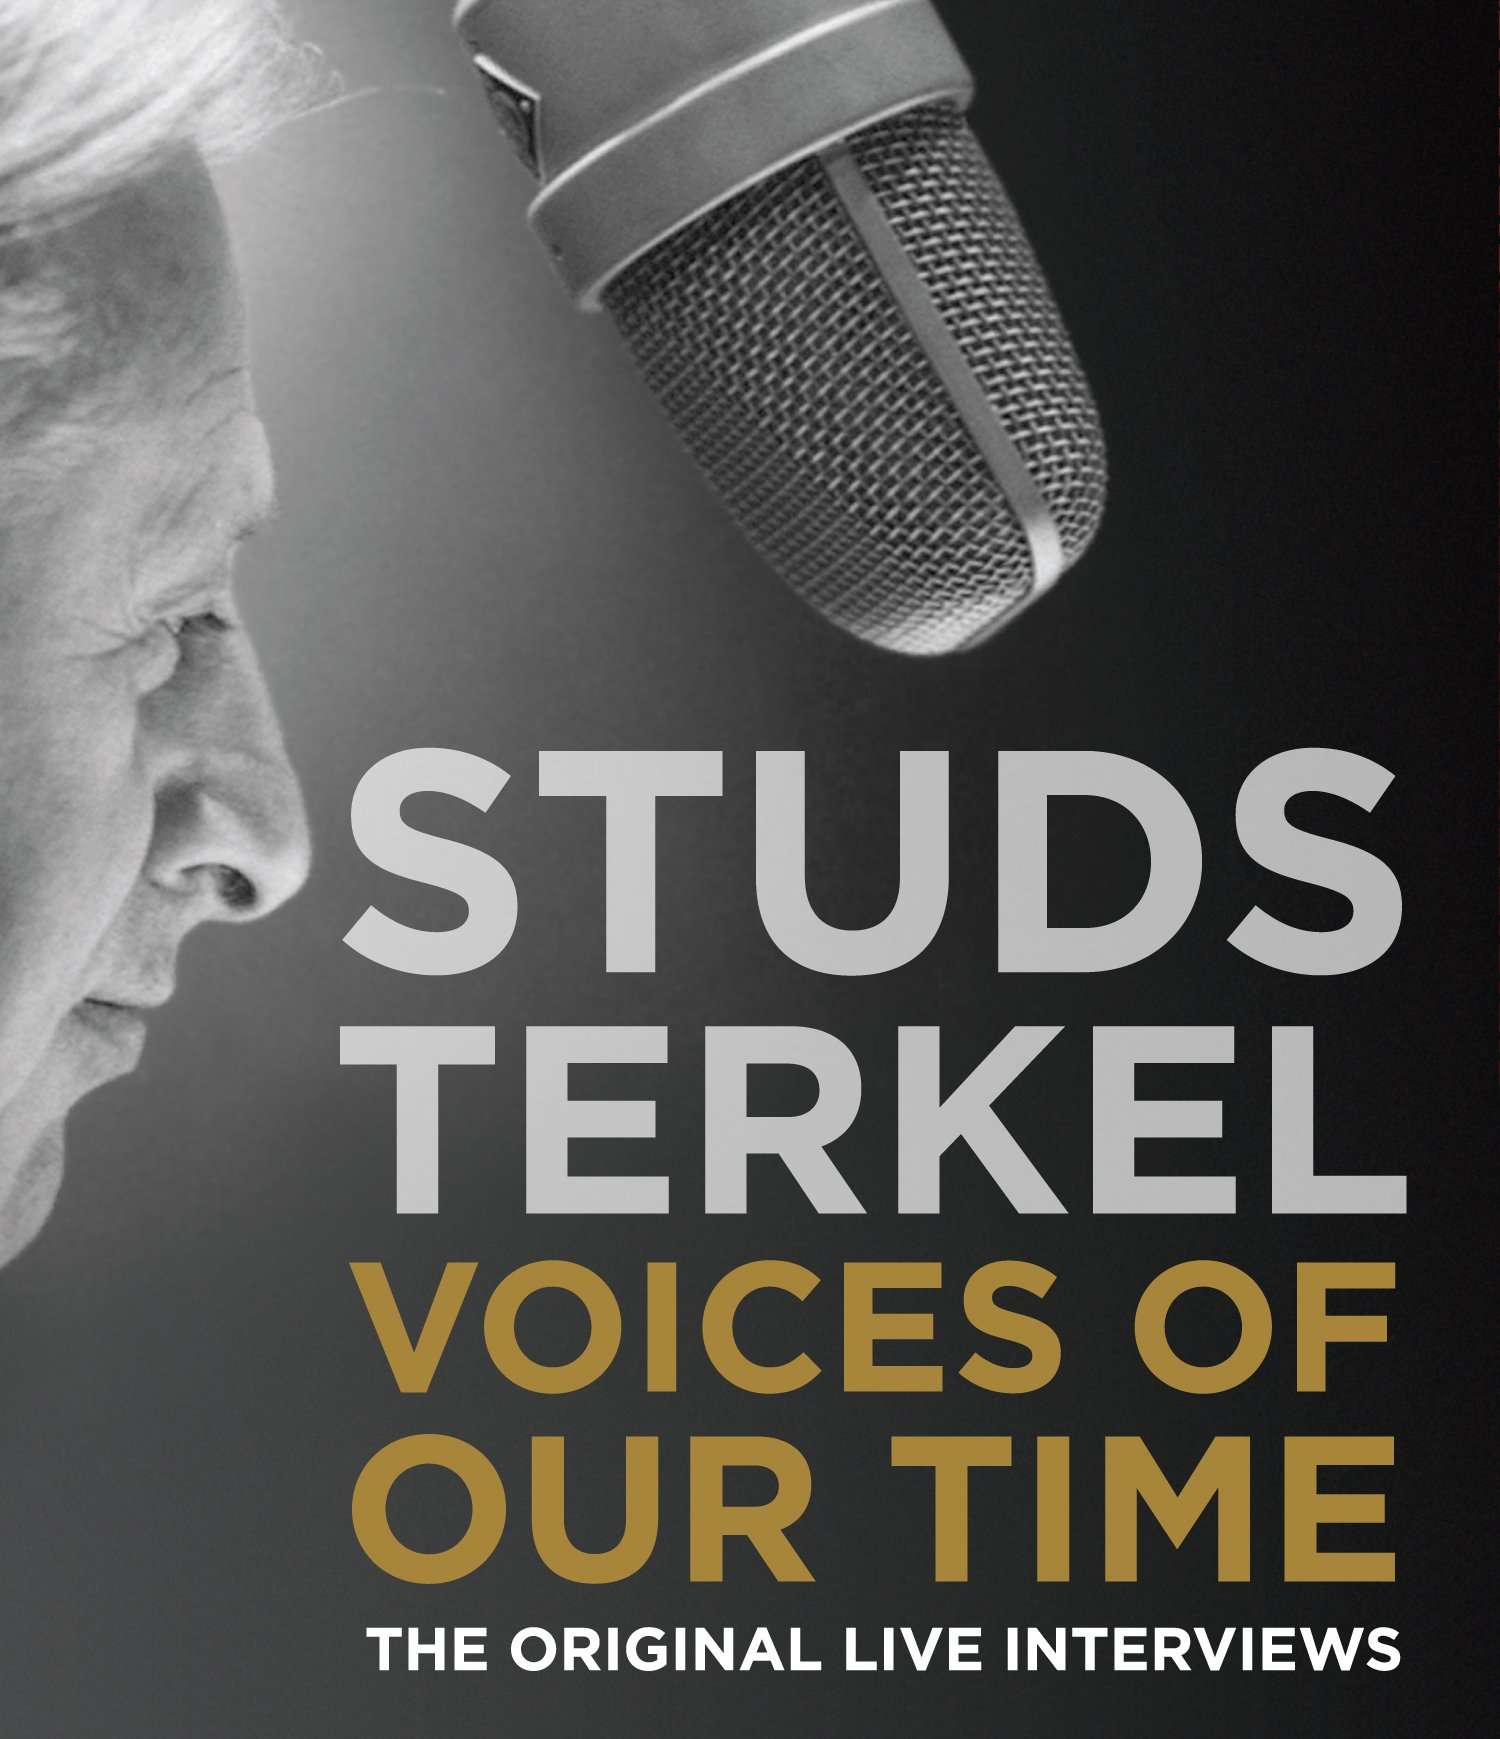 Voices of Our Time - The Original Live Interviews -  Studs Terkel